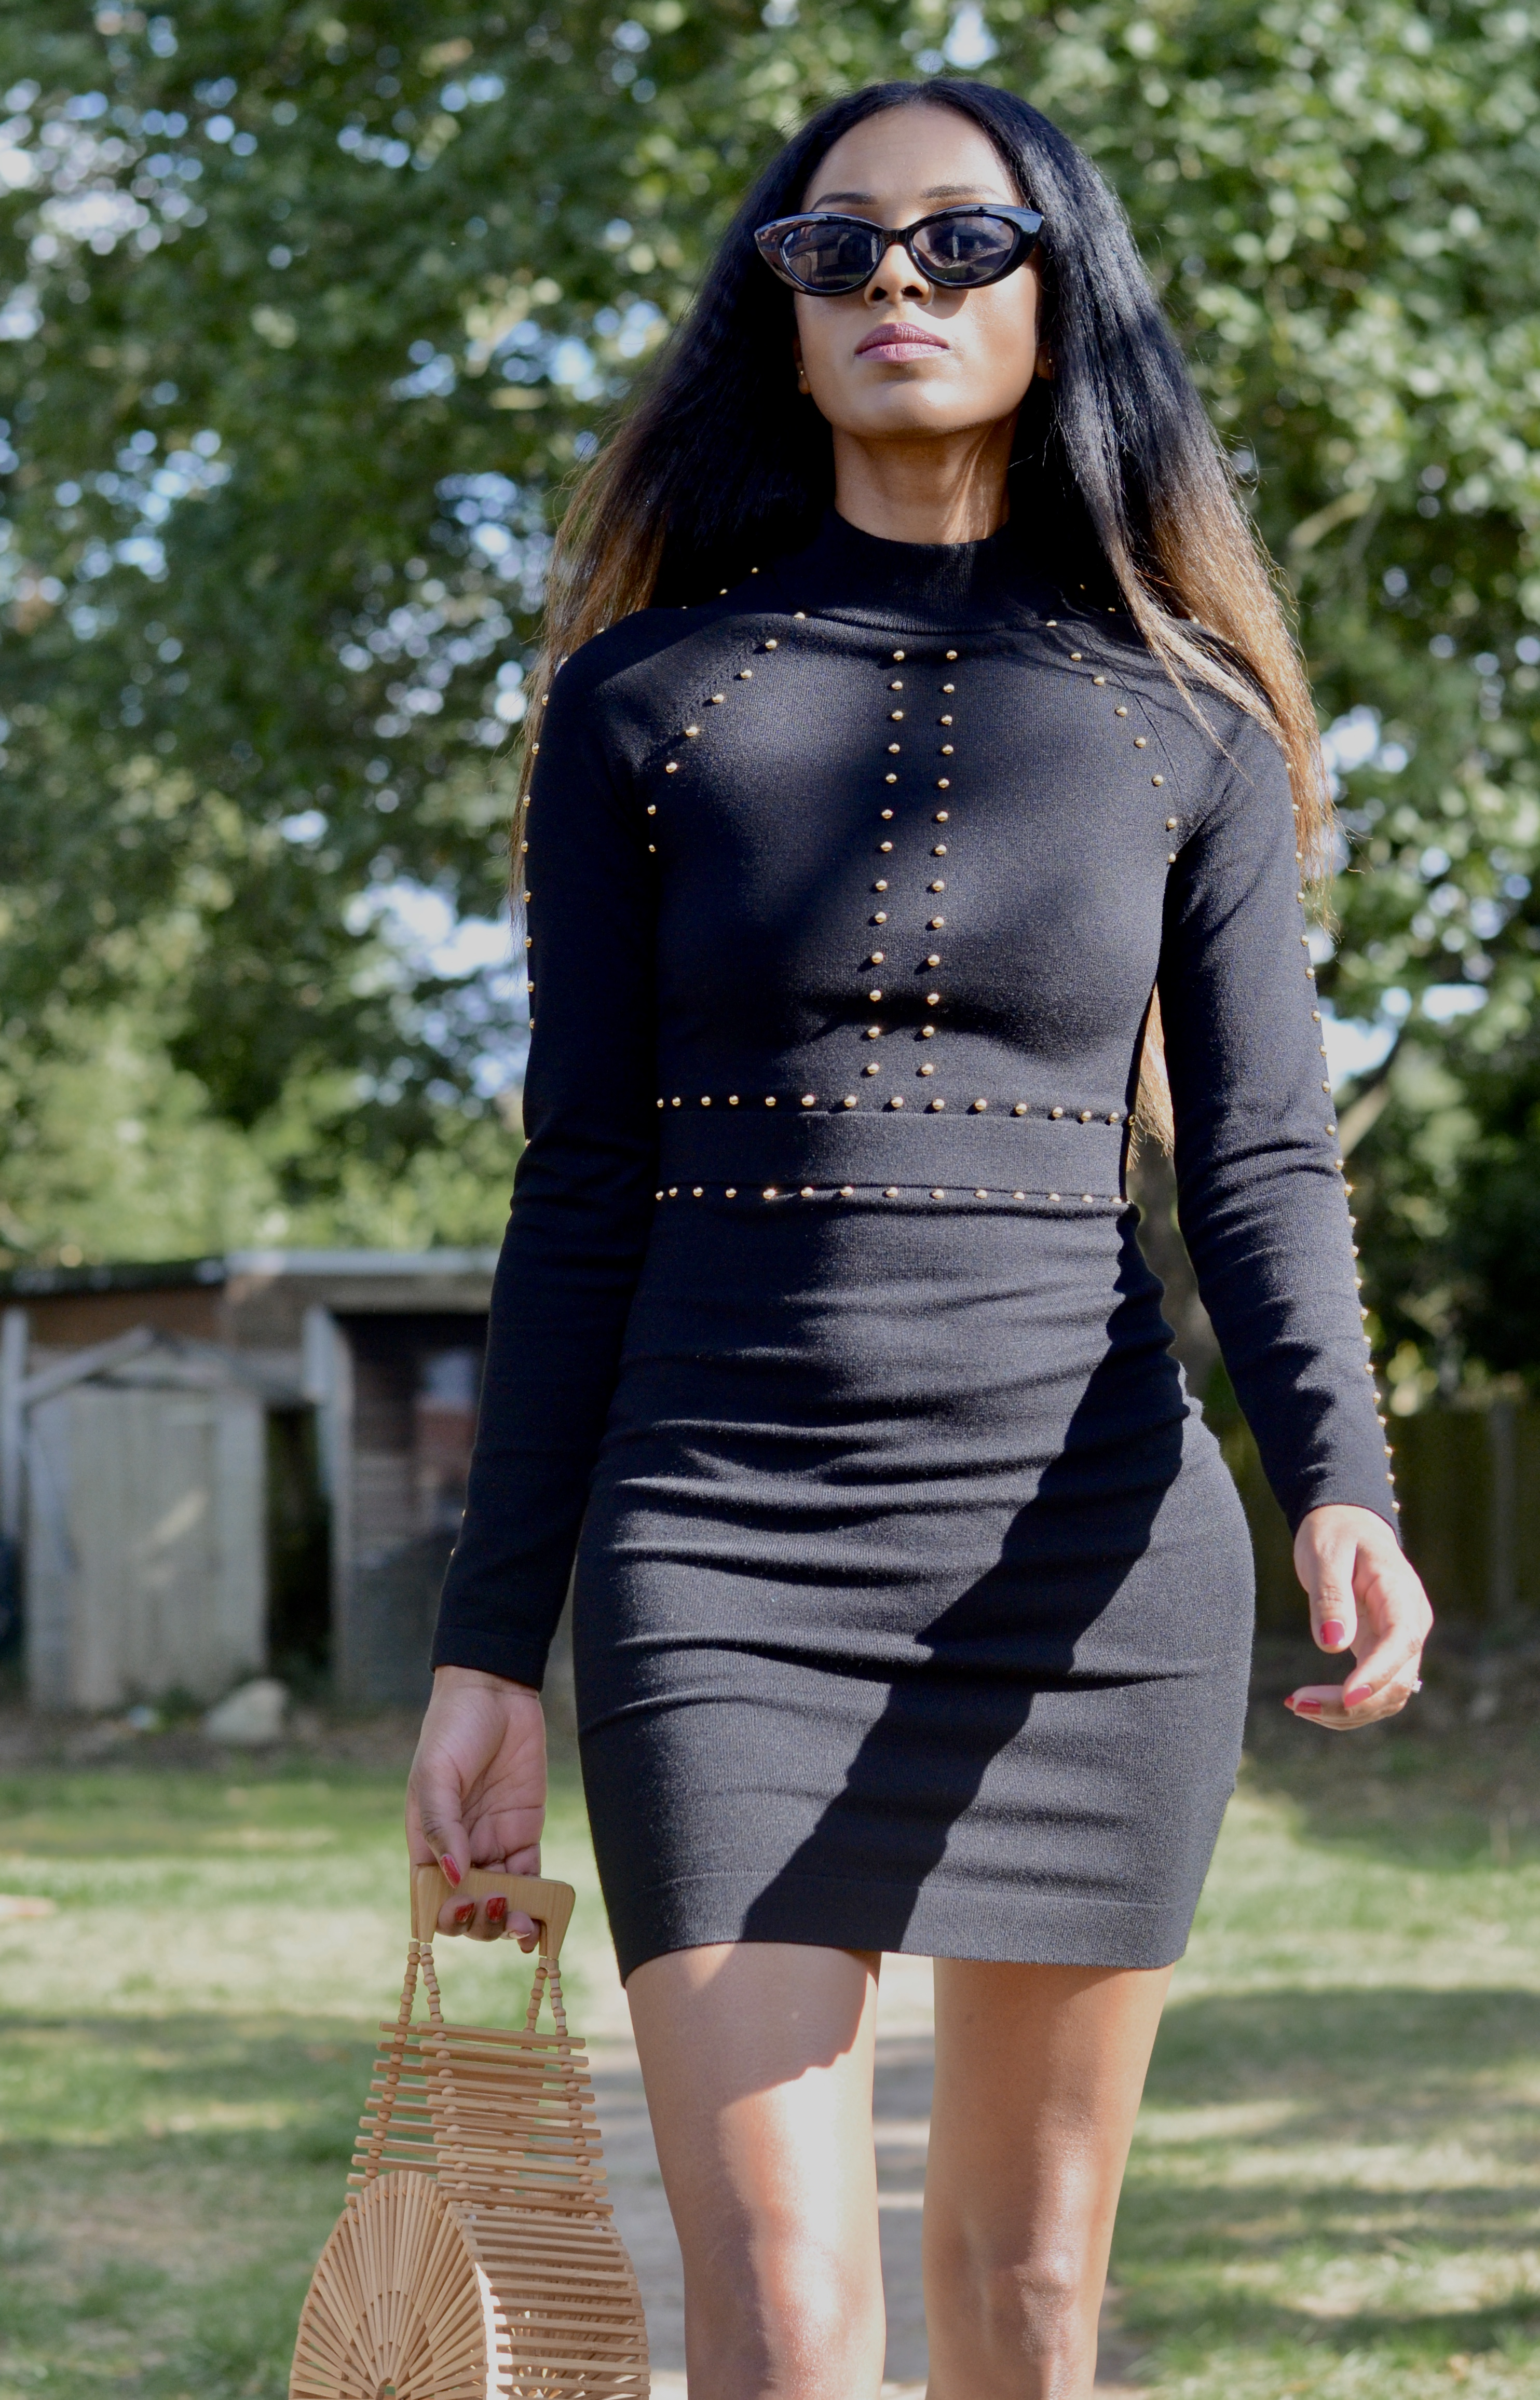 KAREN MILLEN KNIT DRESS FOR AUTUMN